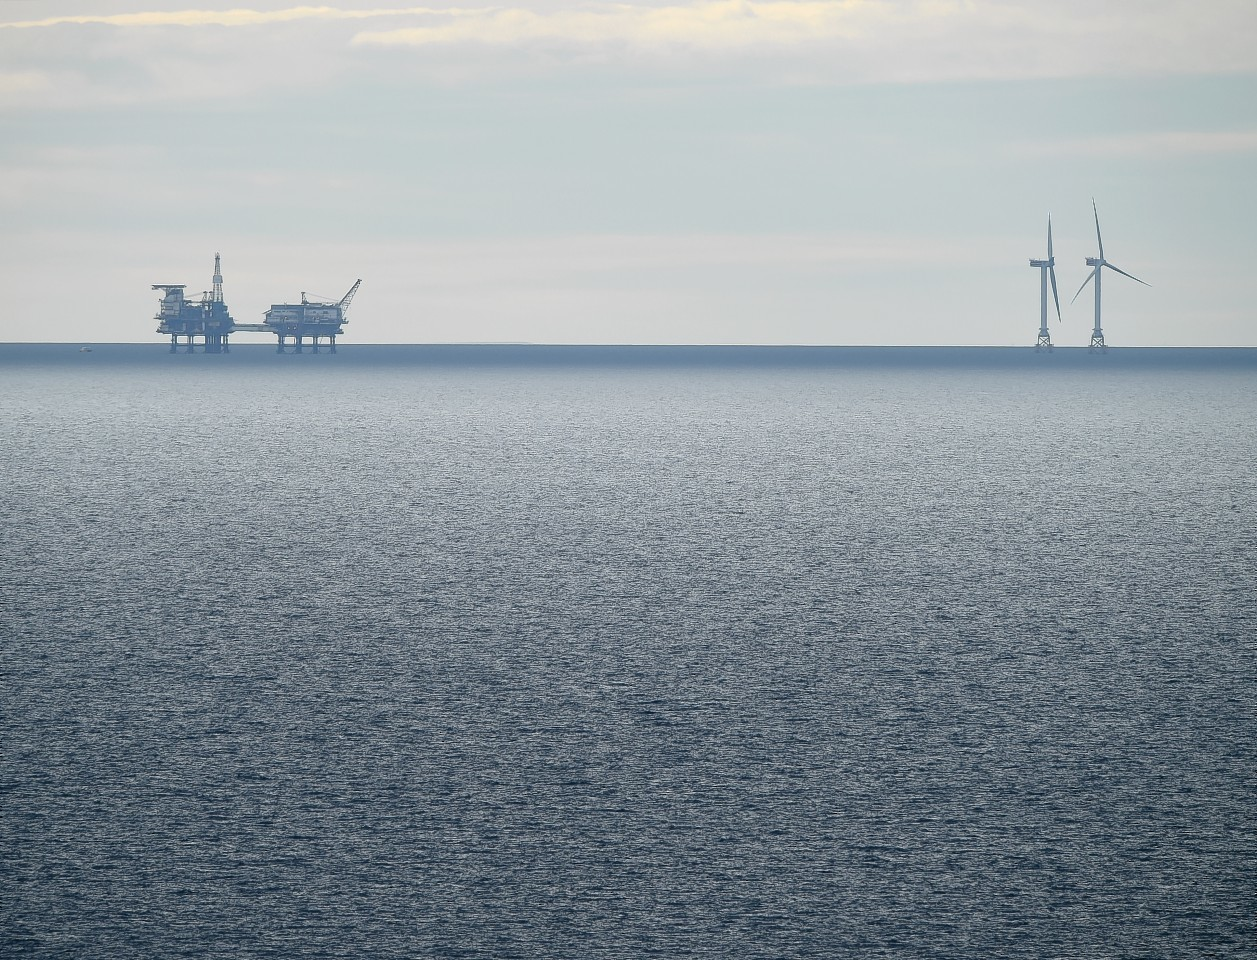 Beatrice oil field and the existing wind turbines off the Caithness coast